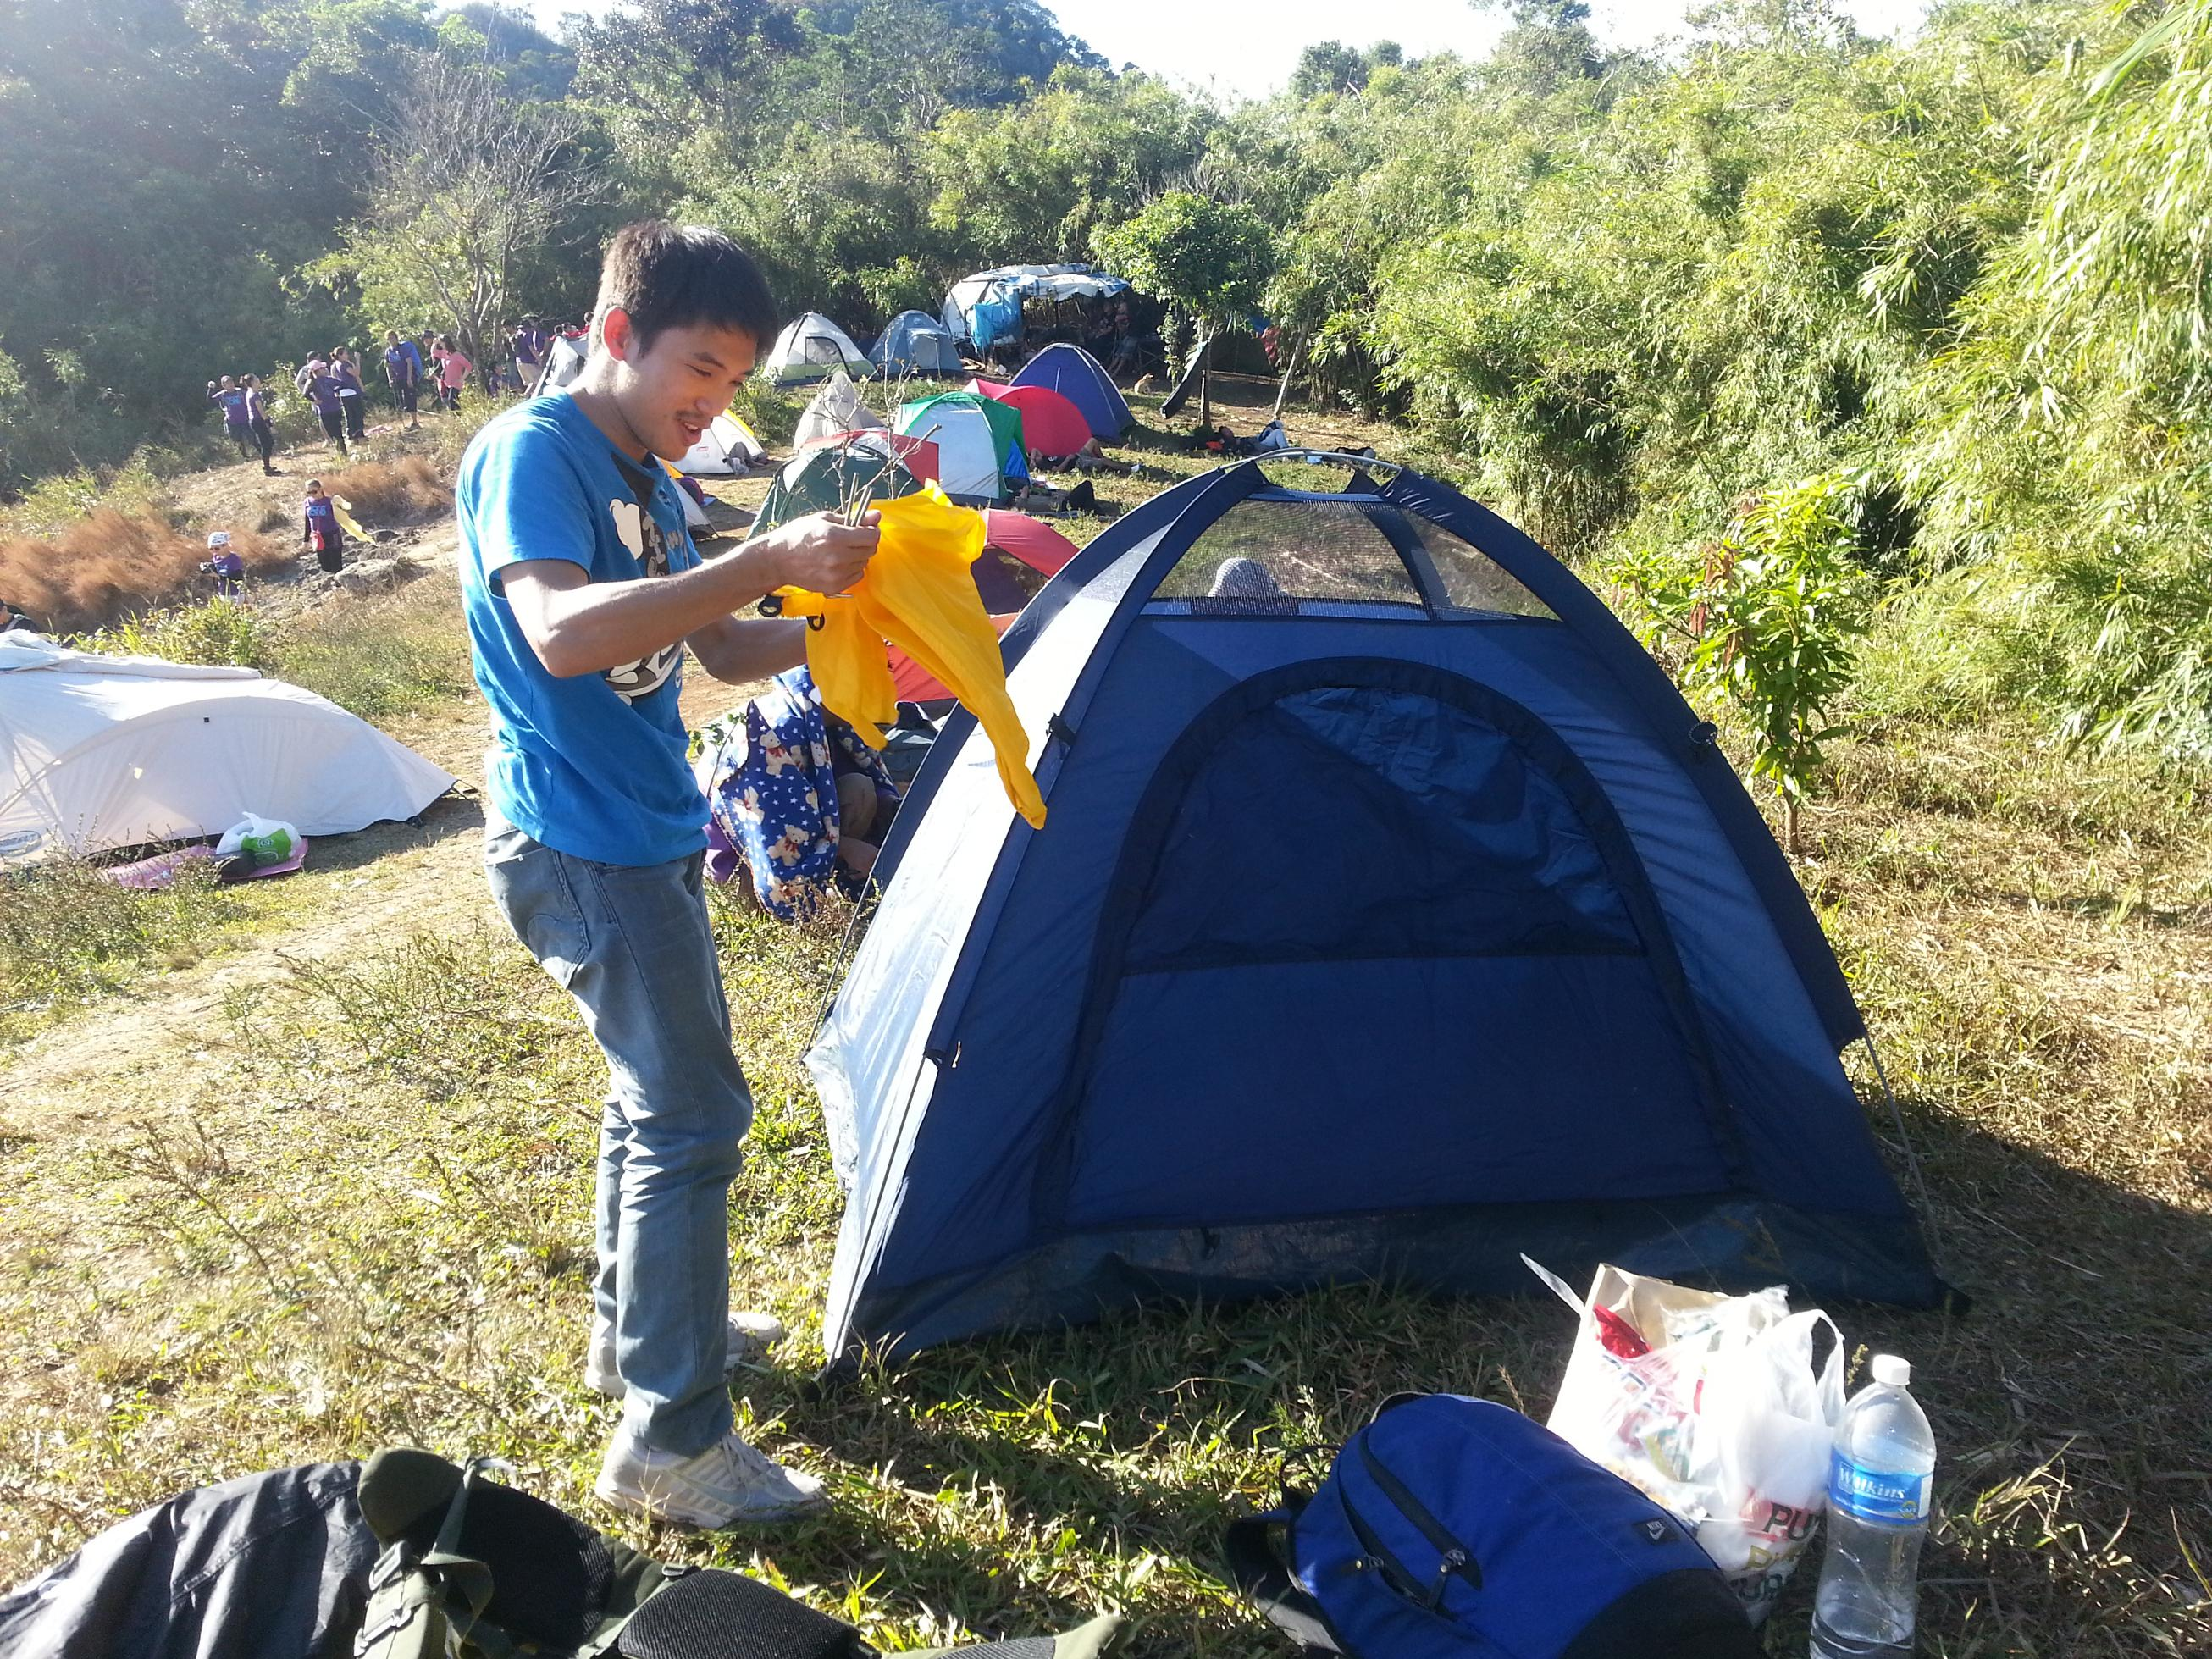 Campsite at Pico de Loro